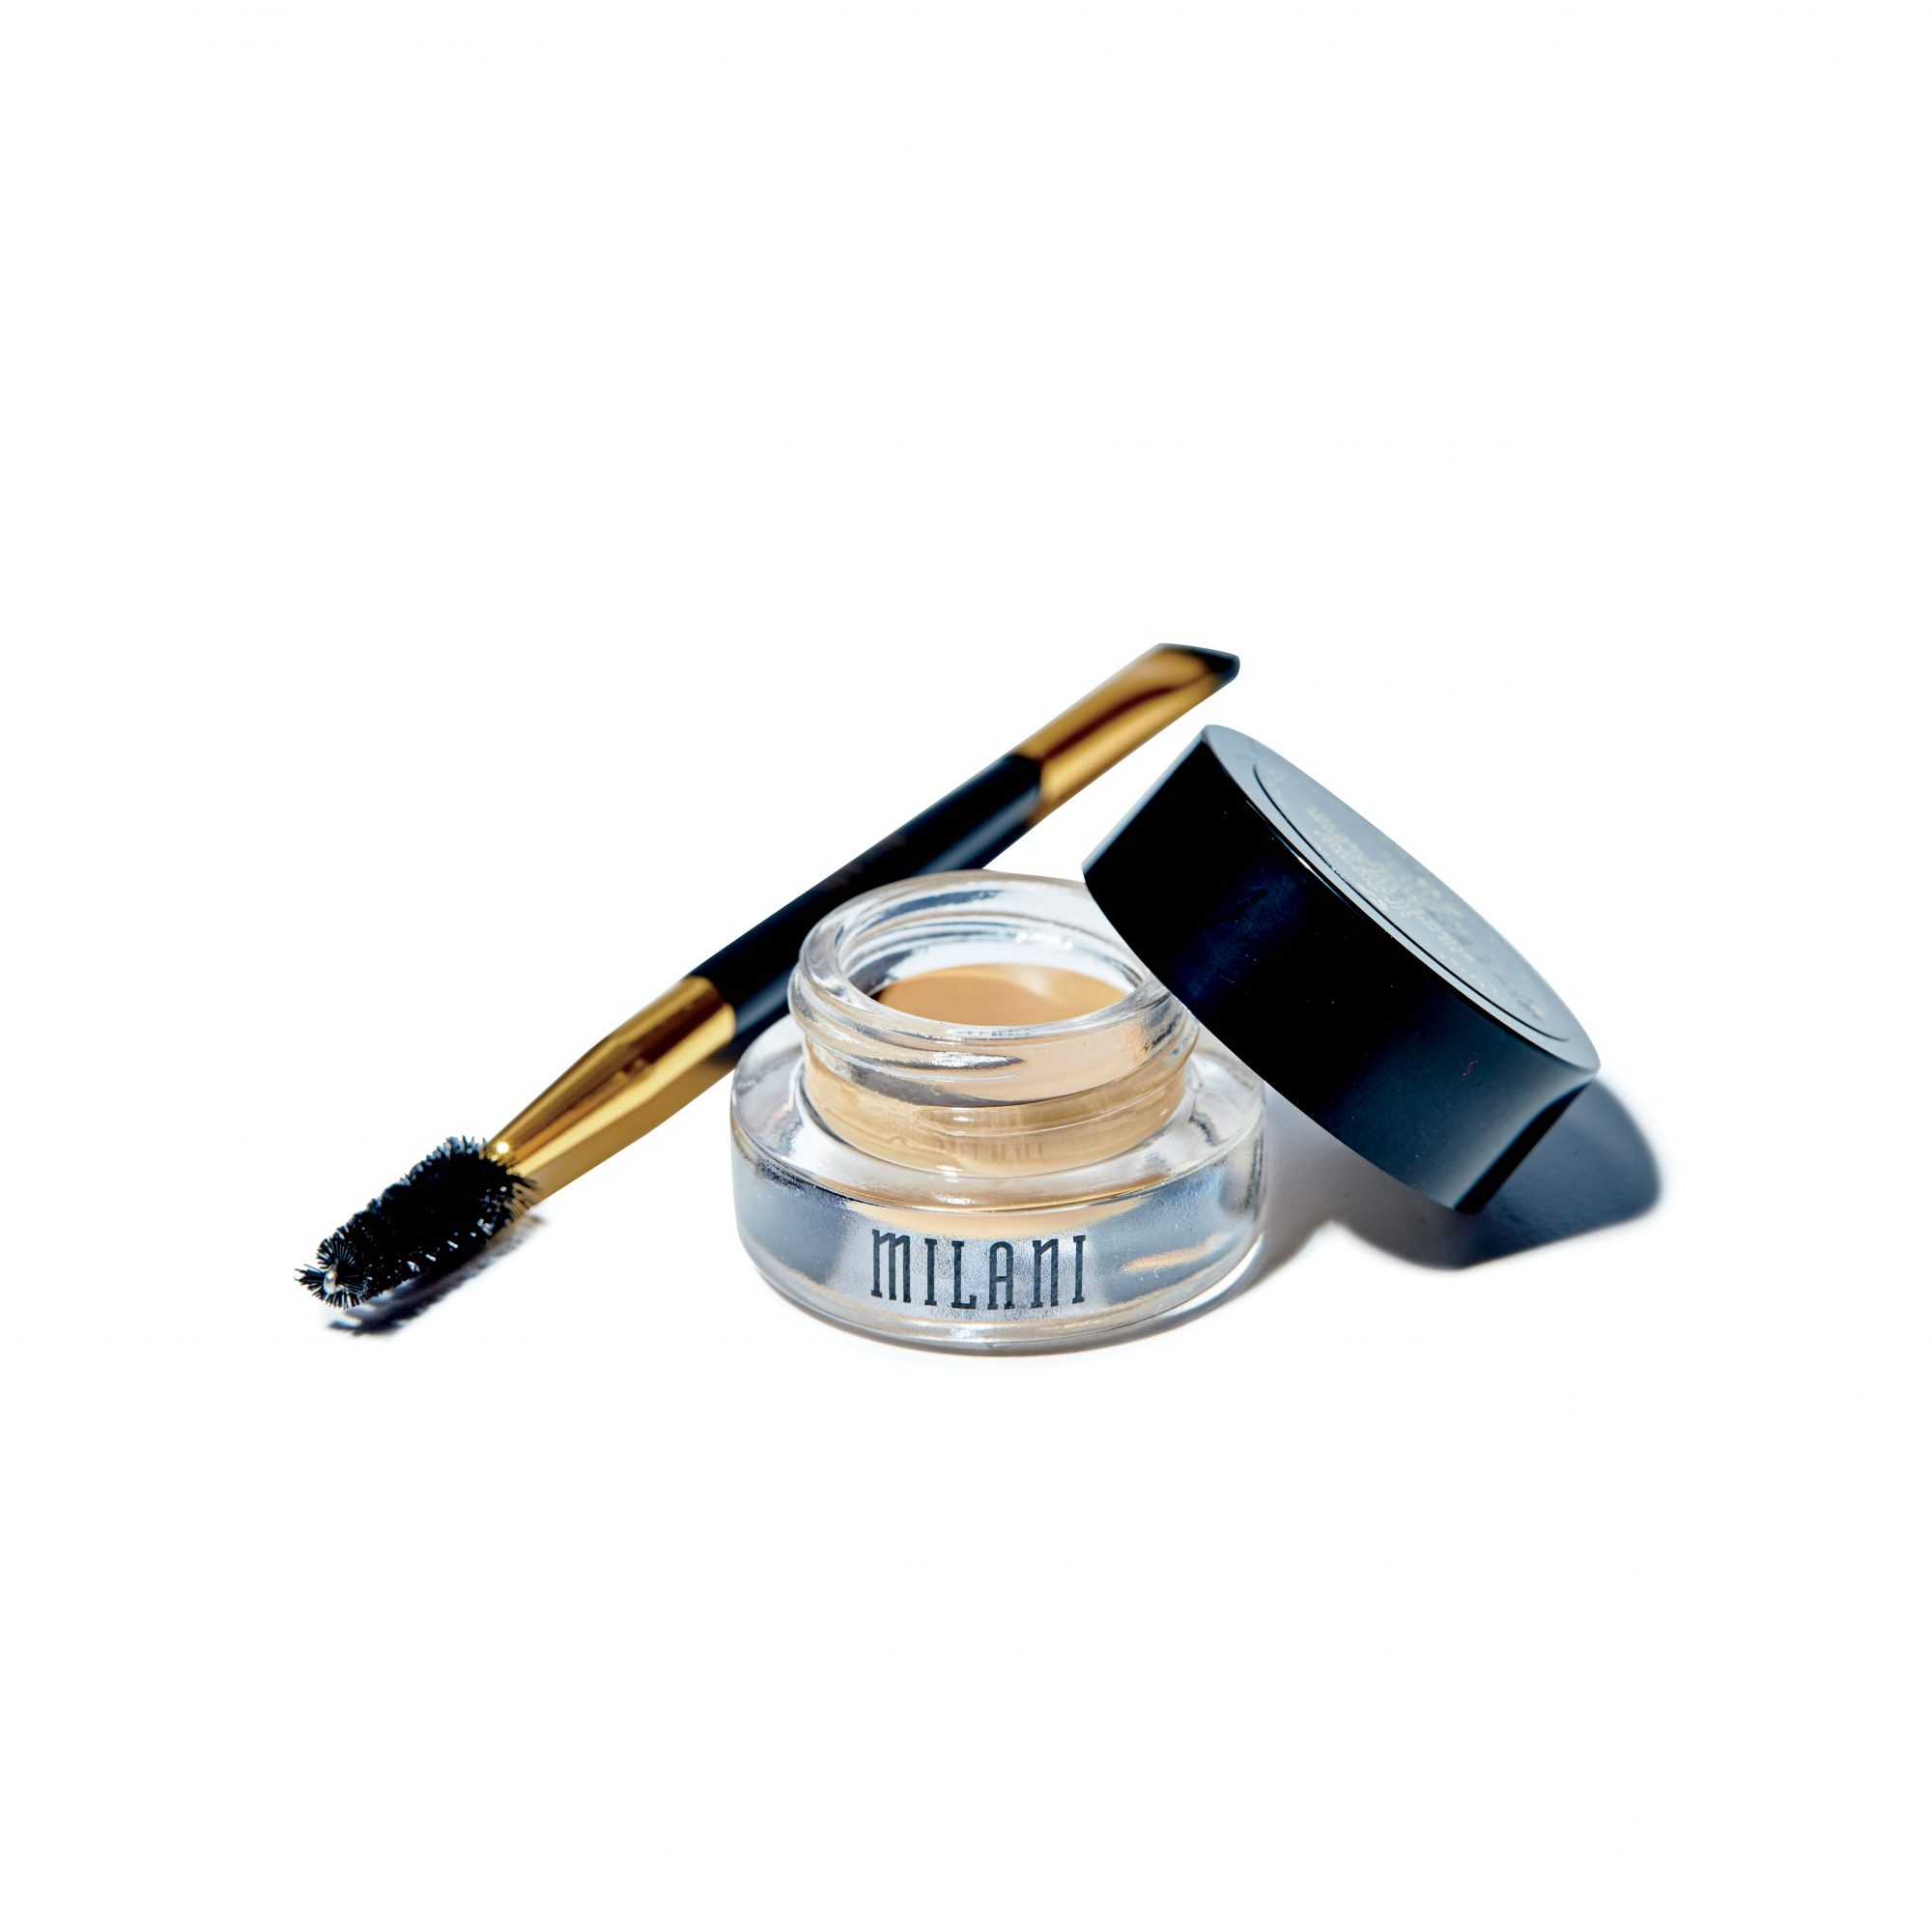 Milani Cosmetics Stay Put Brow Color in Natural Taupe